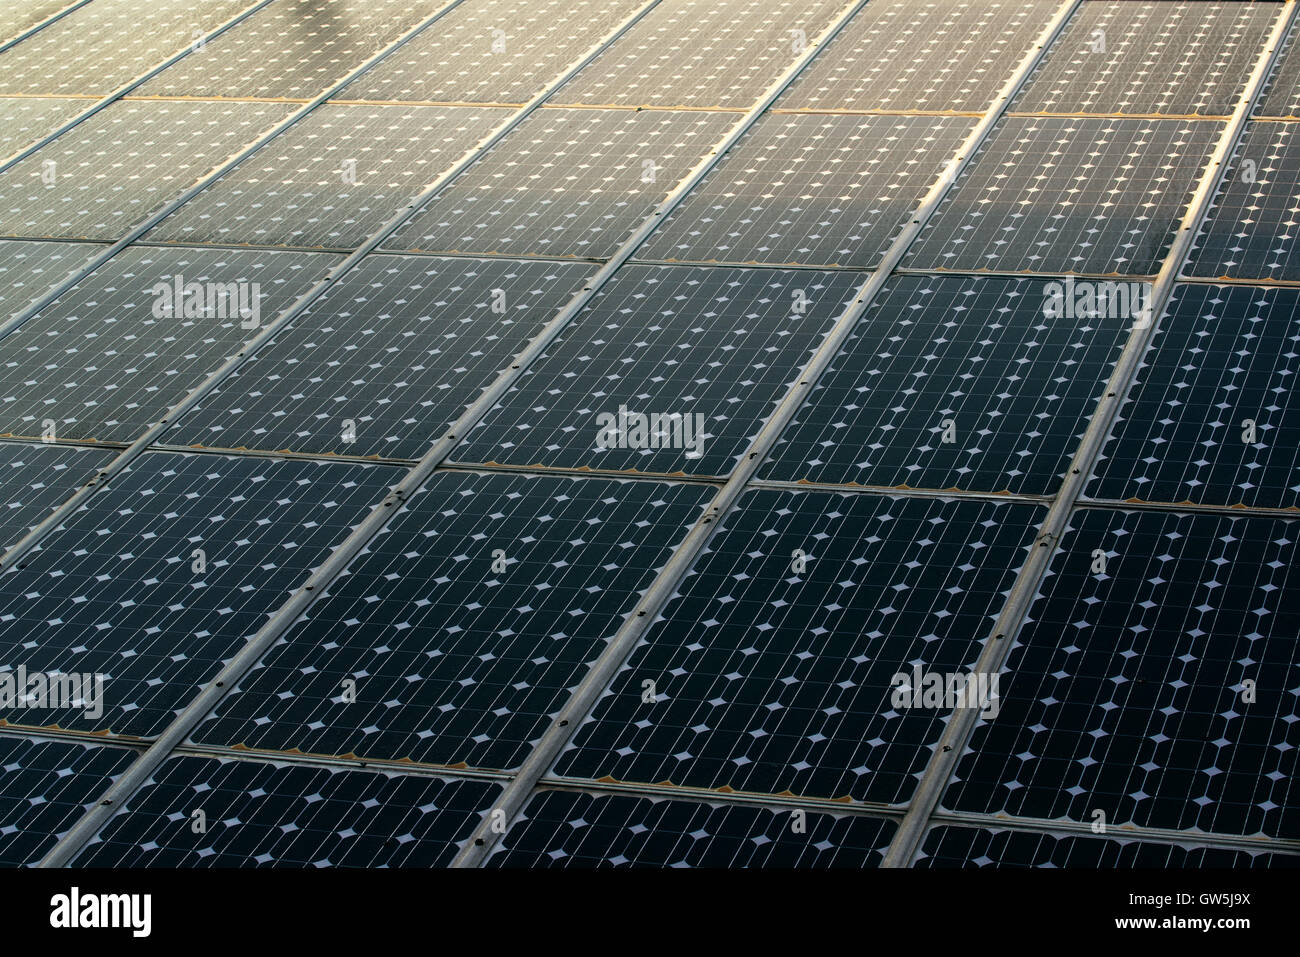 Sunlight on solar panels photovoltaic cell modules - Stock Image